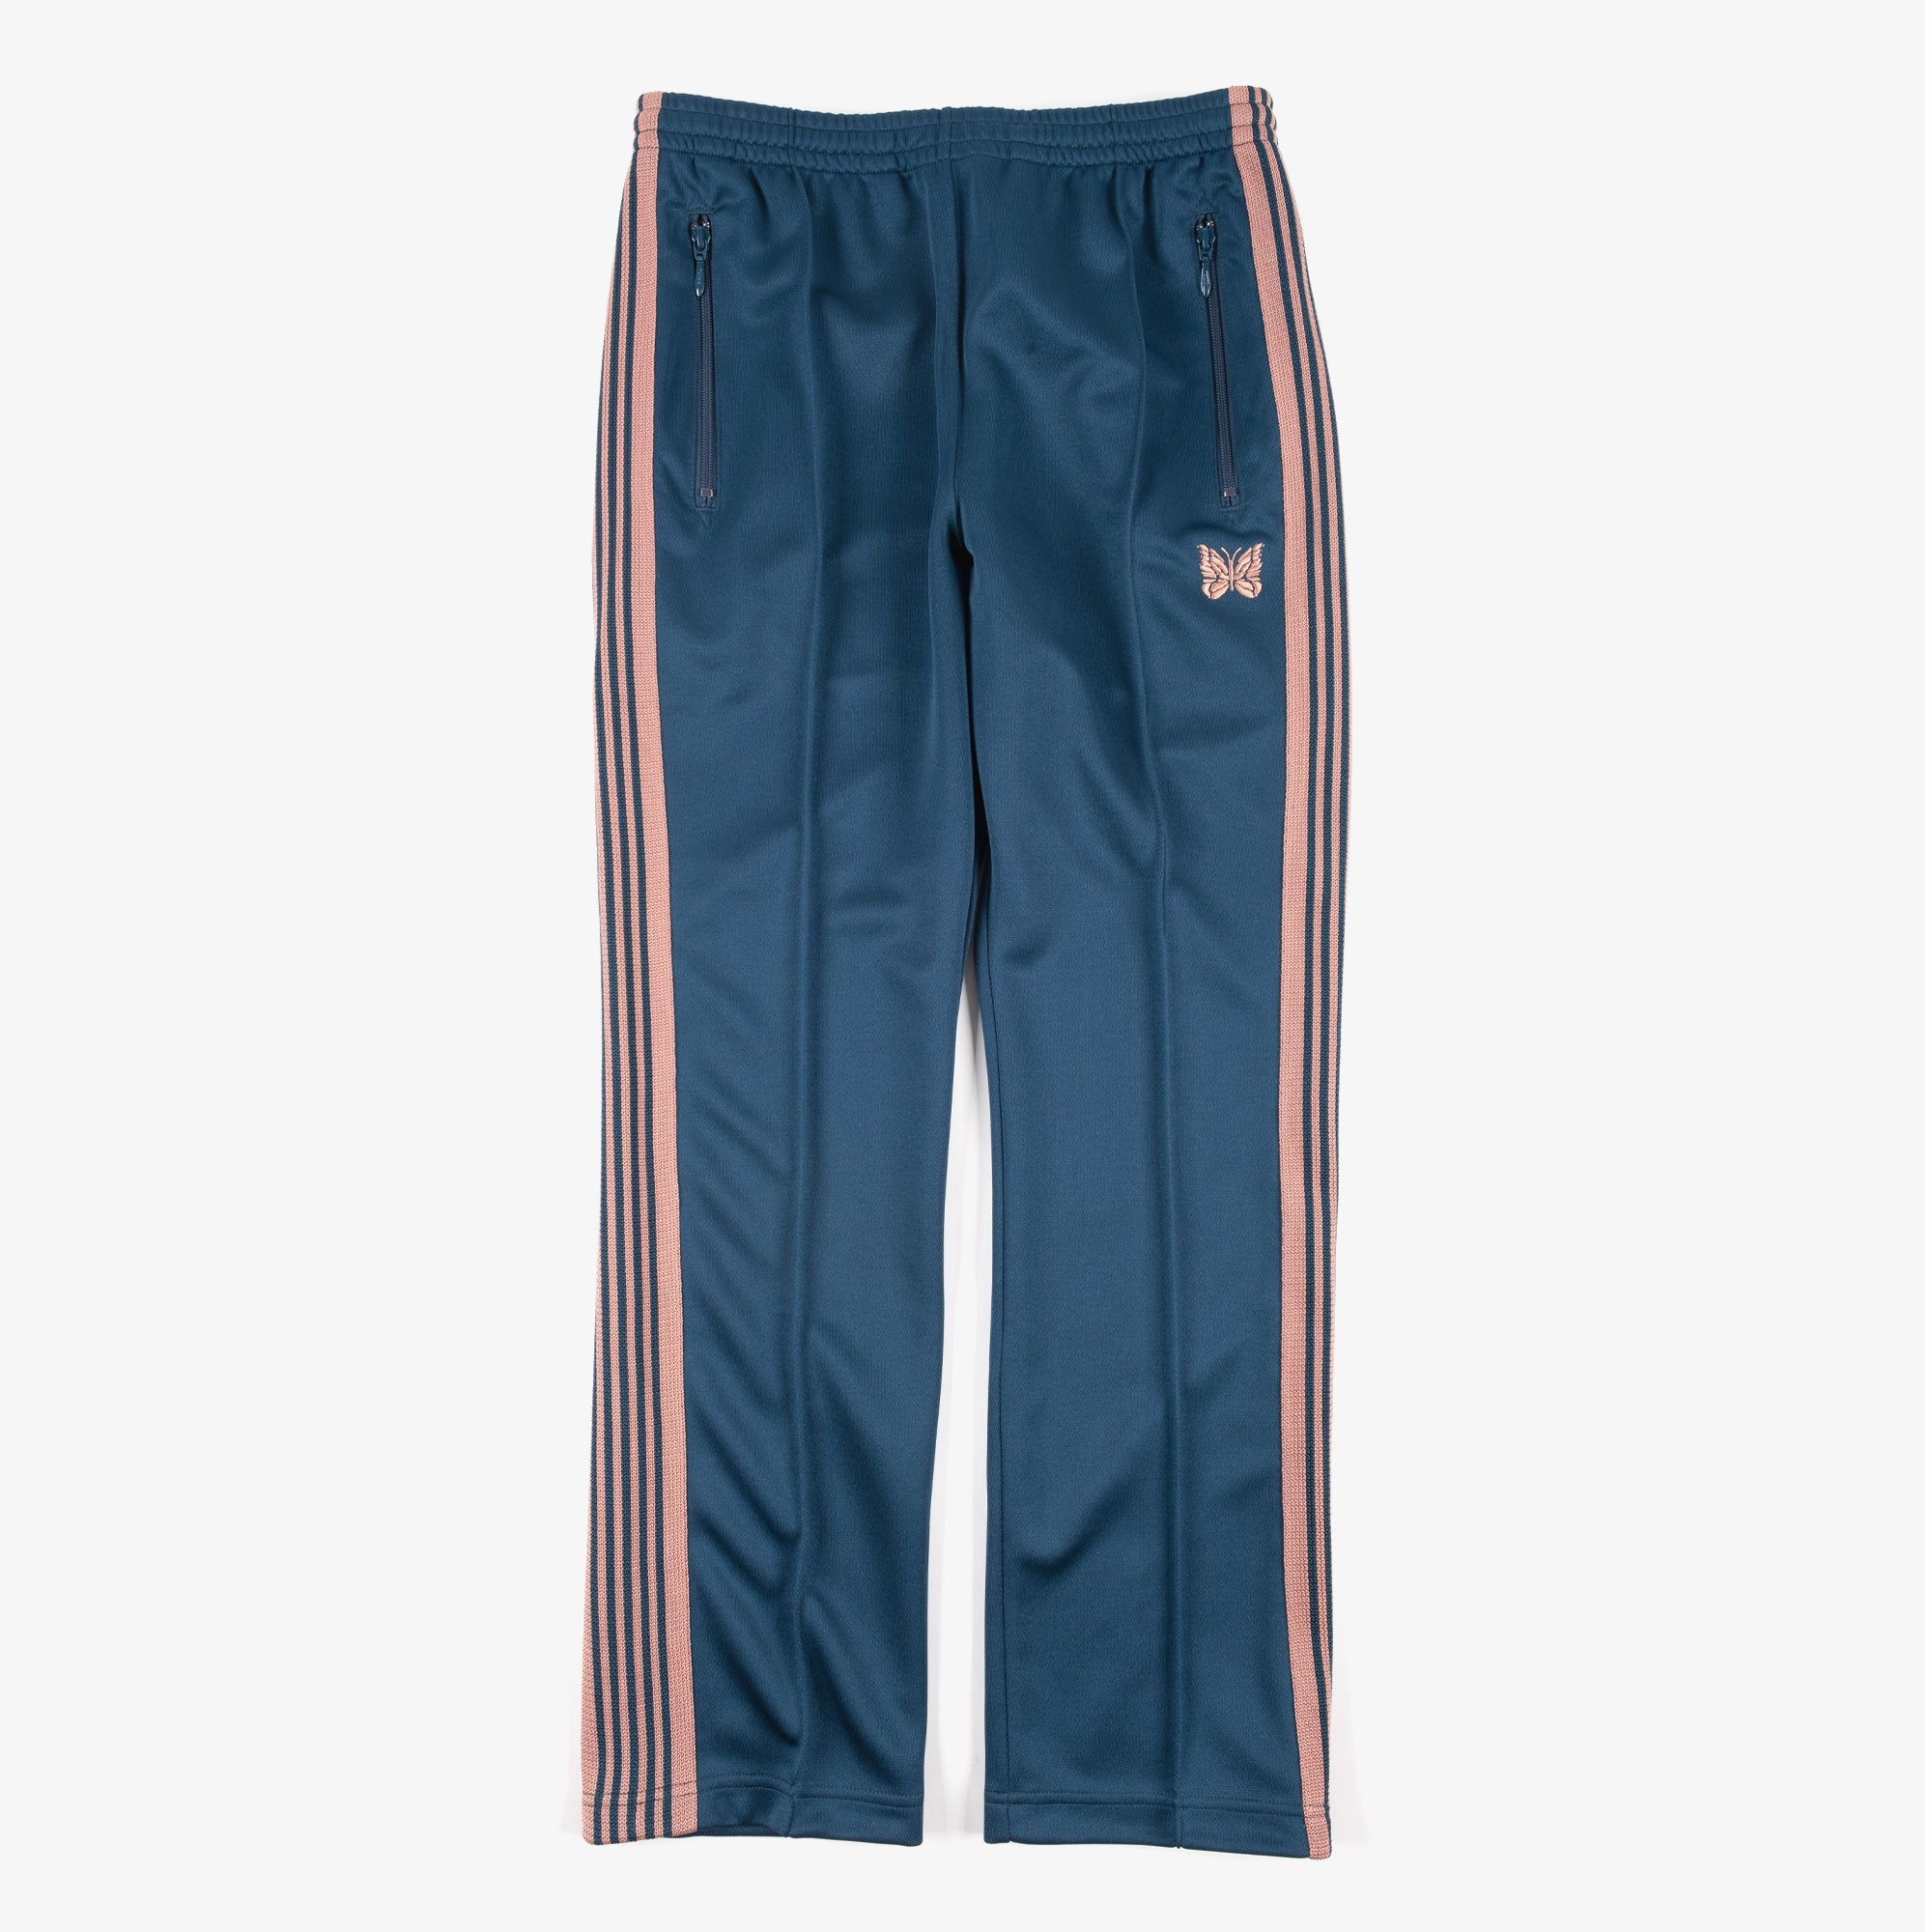 Needles M' Narrow Track Pant - Poly Smooth Teal Green 1